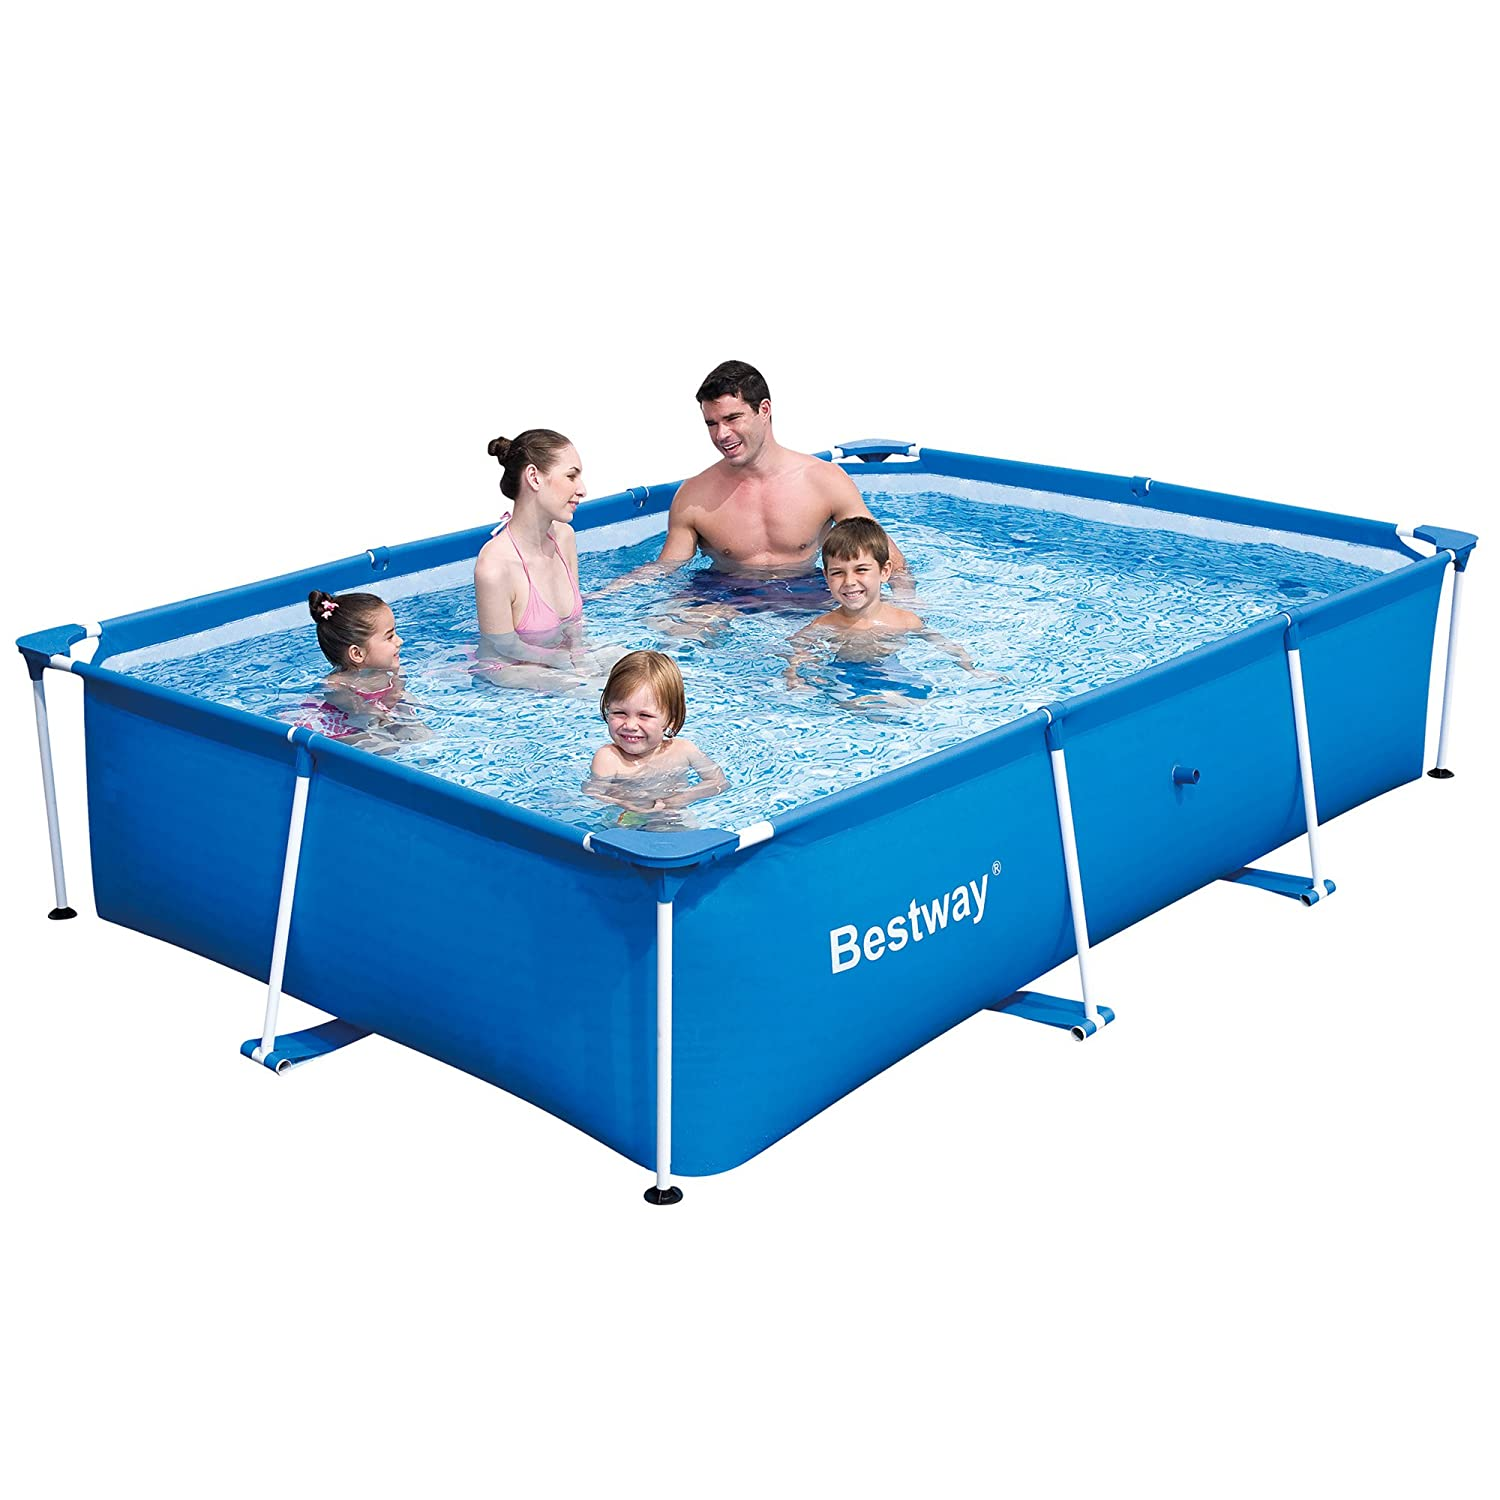 Bestway 118 x 79 x 26 Inches 871 Best Kiddie Pool